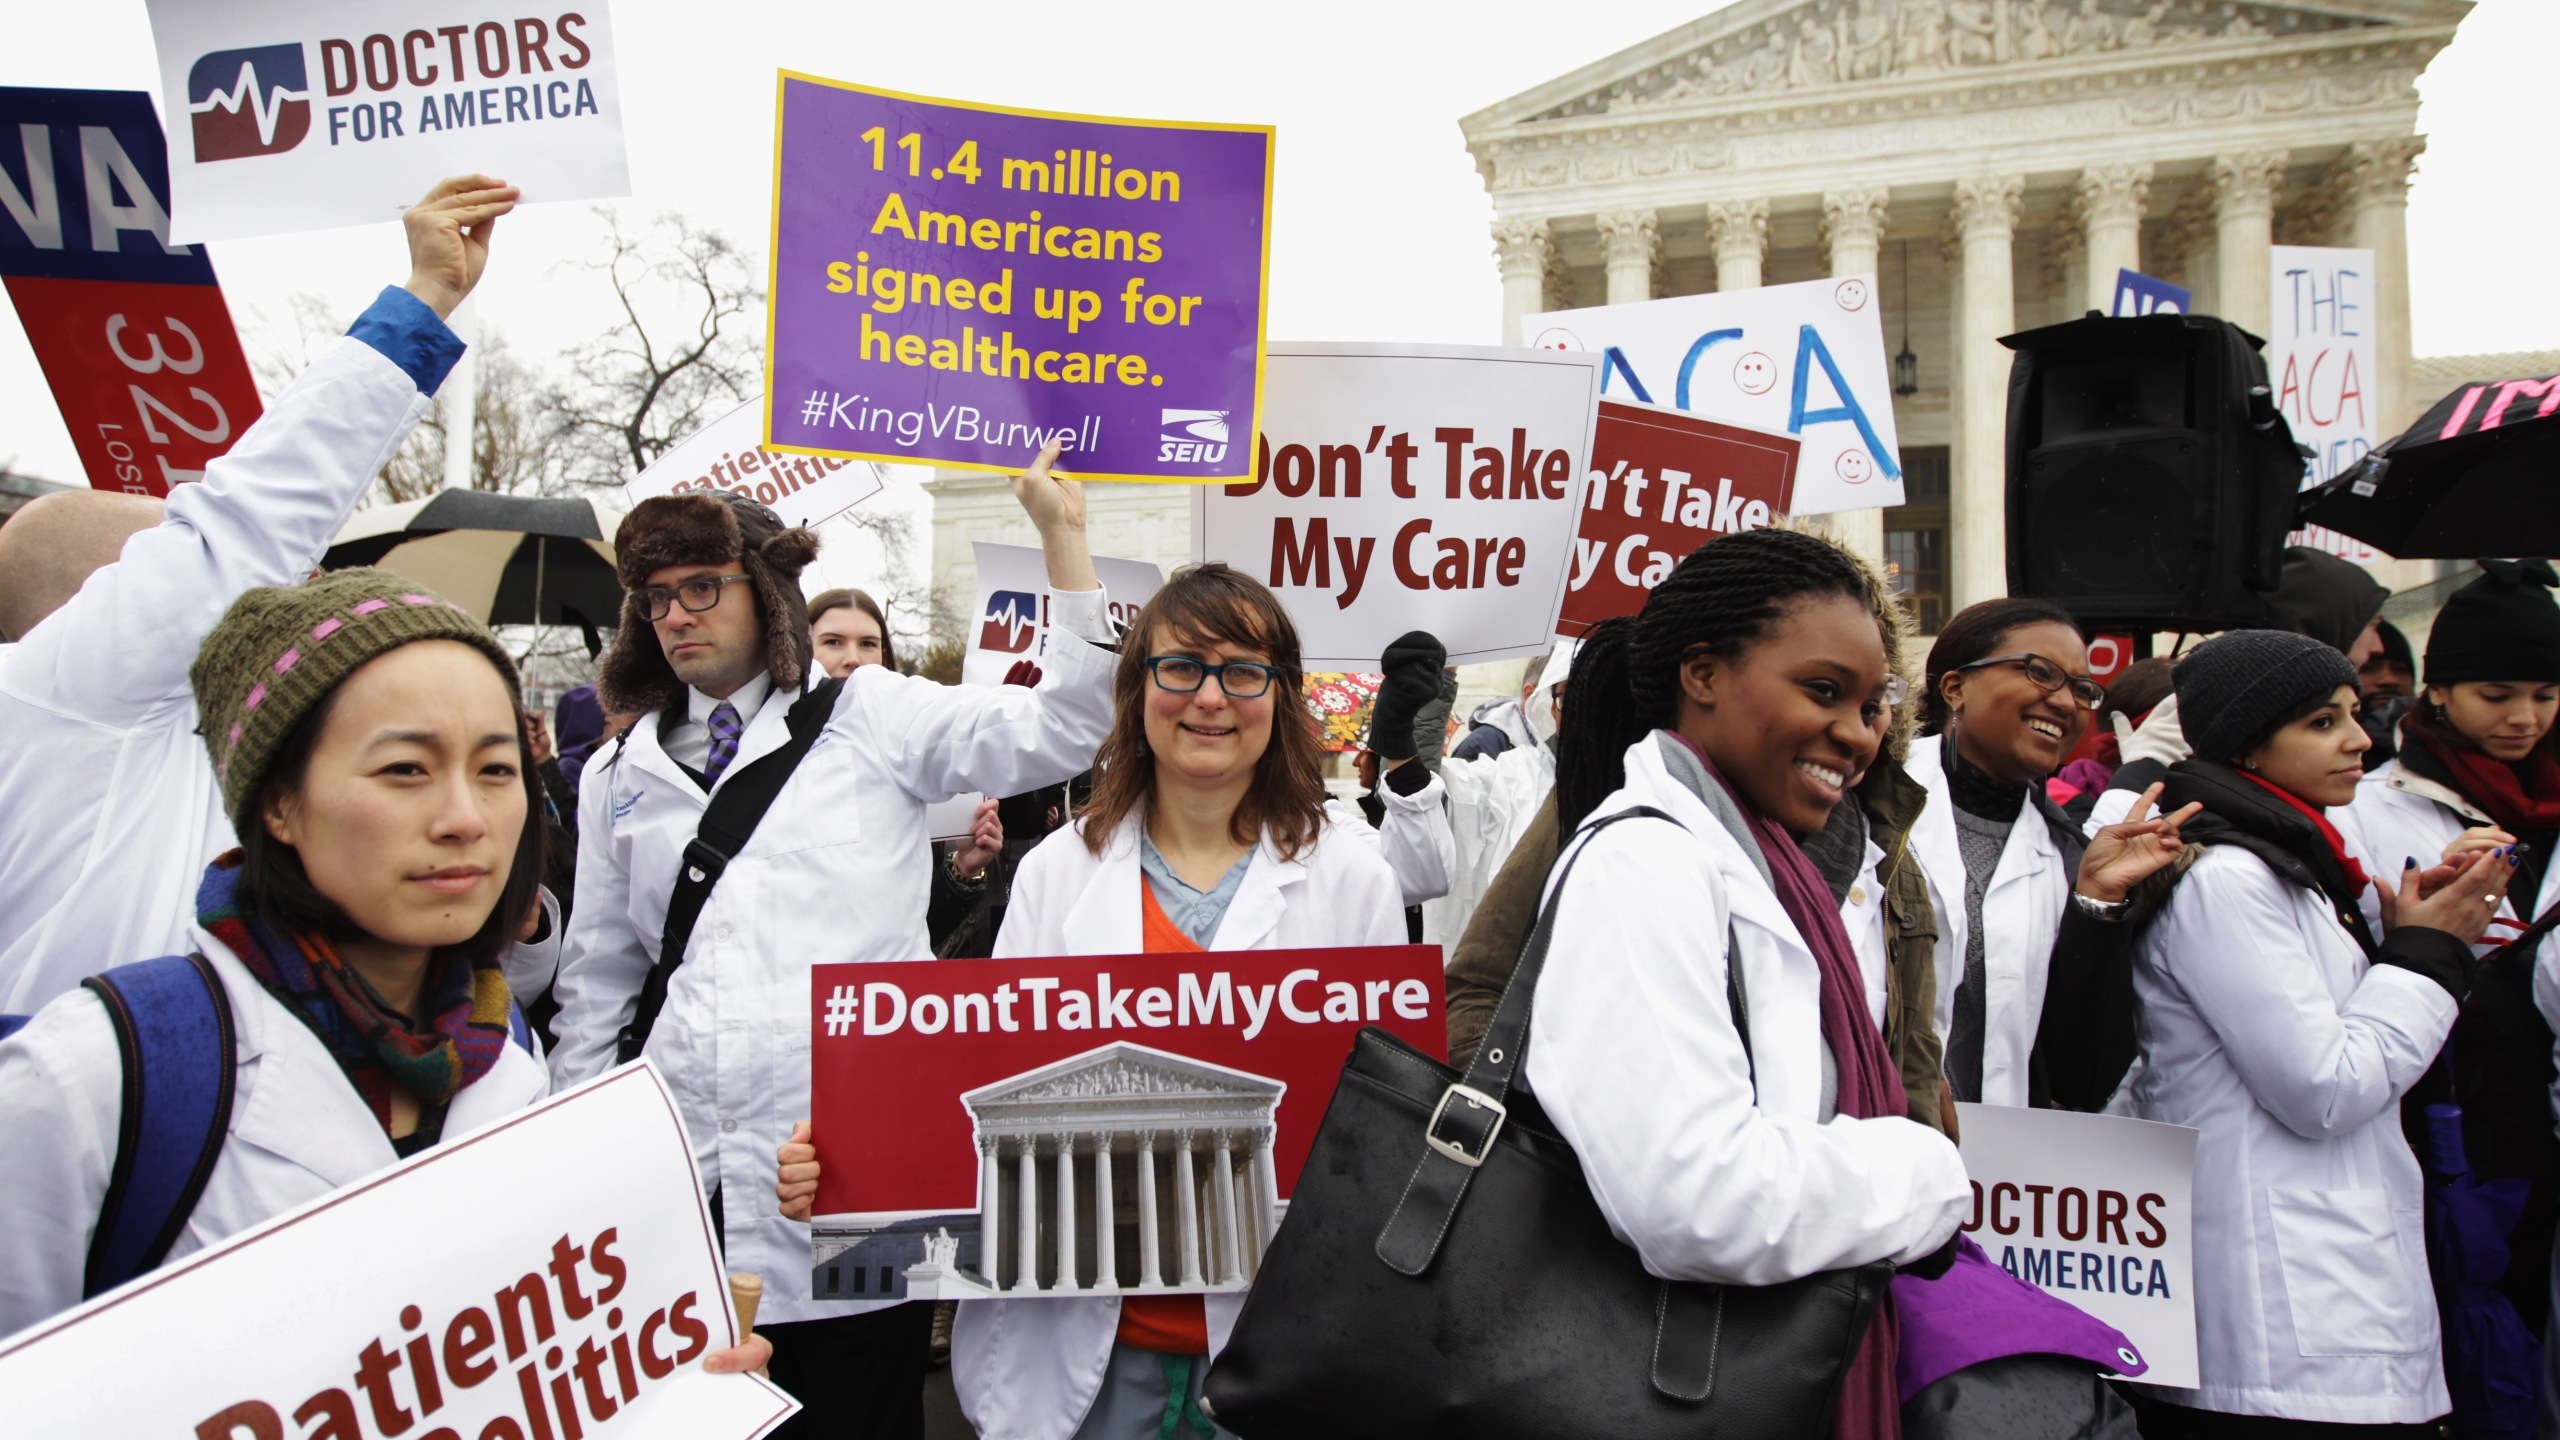 Supporters of the Affordable Care Act gather in front of the U.S Supreme Court during a rally March 4, 2015, in Washington, D.C. (Credit: Alex Wong / Getty Images)